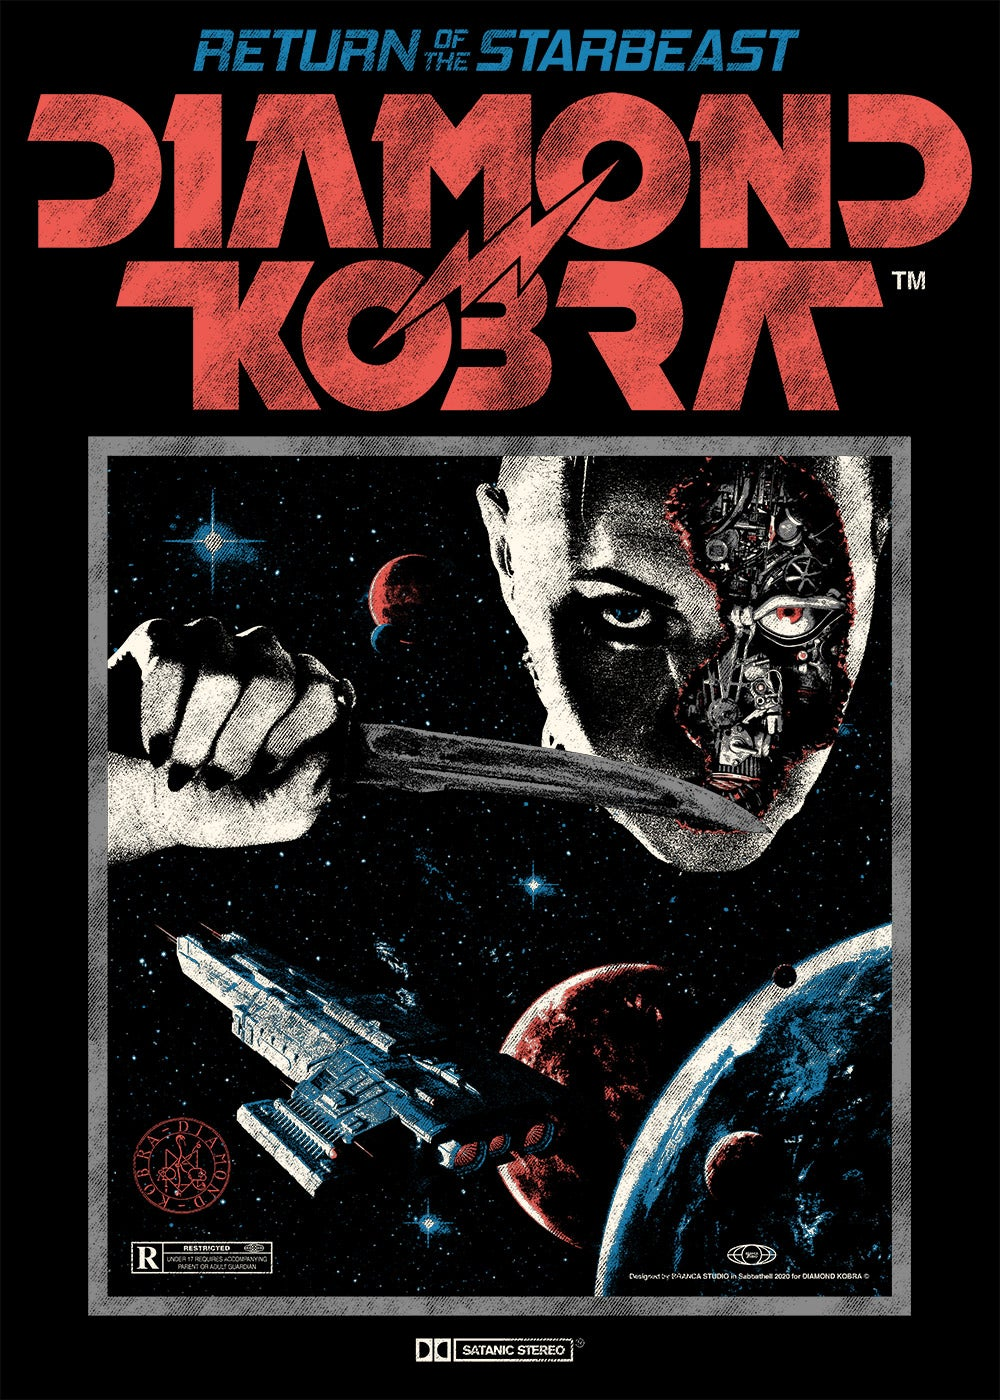 DIAMOND KOBRA - Return of the Starbeast